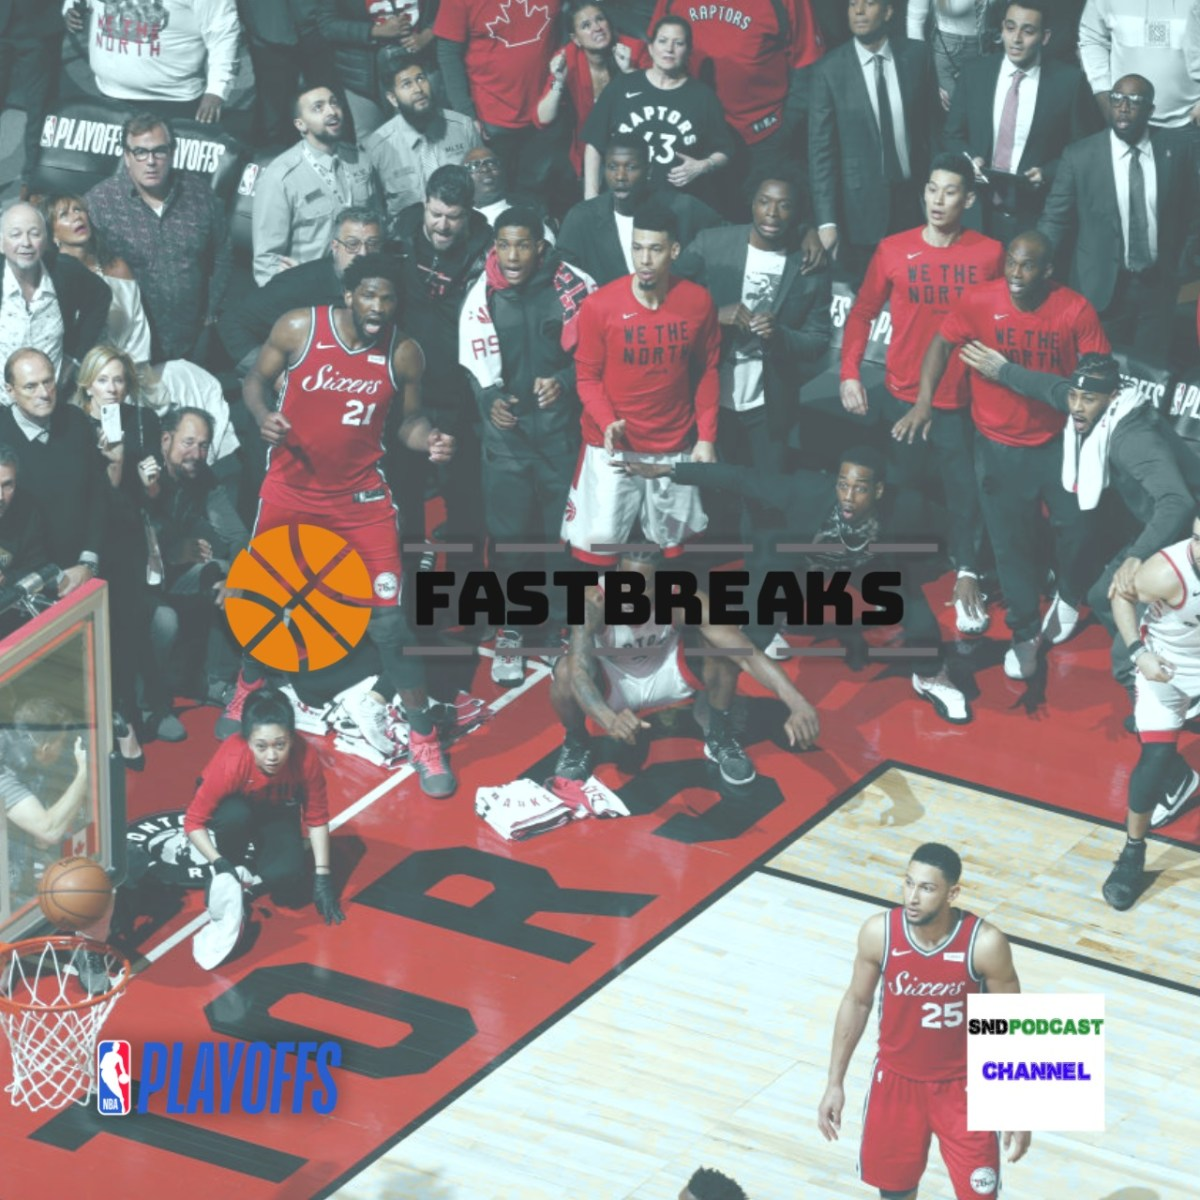 Fastbreaks EP 20: That's Not Your Lifestyle